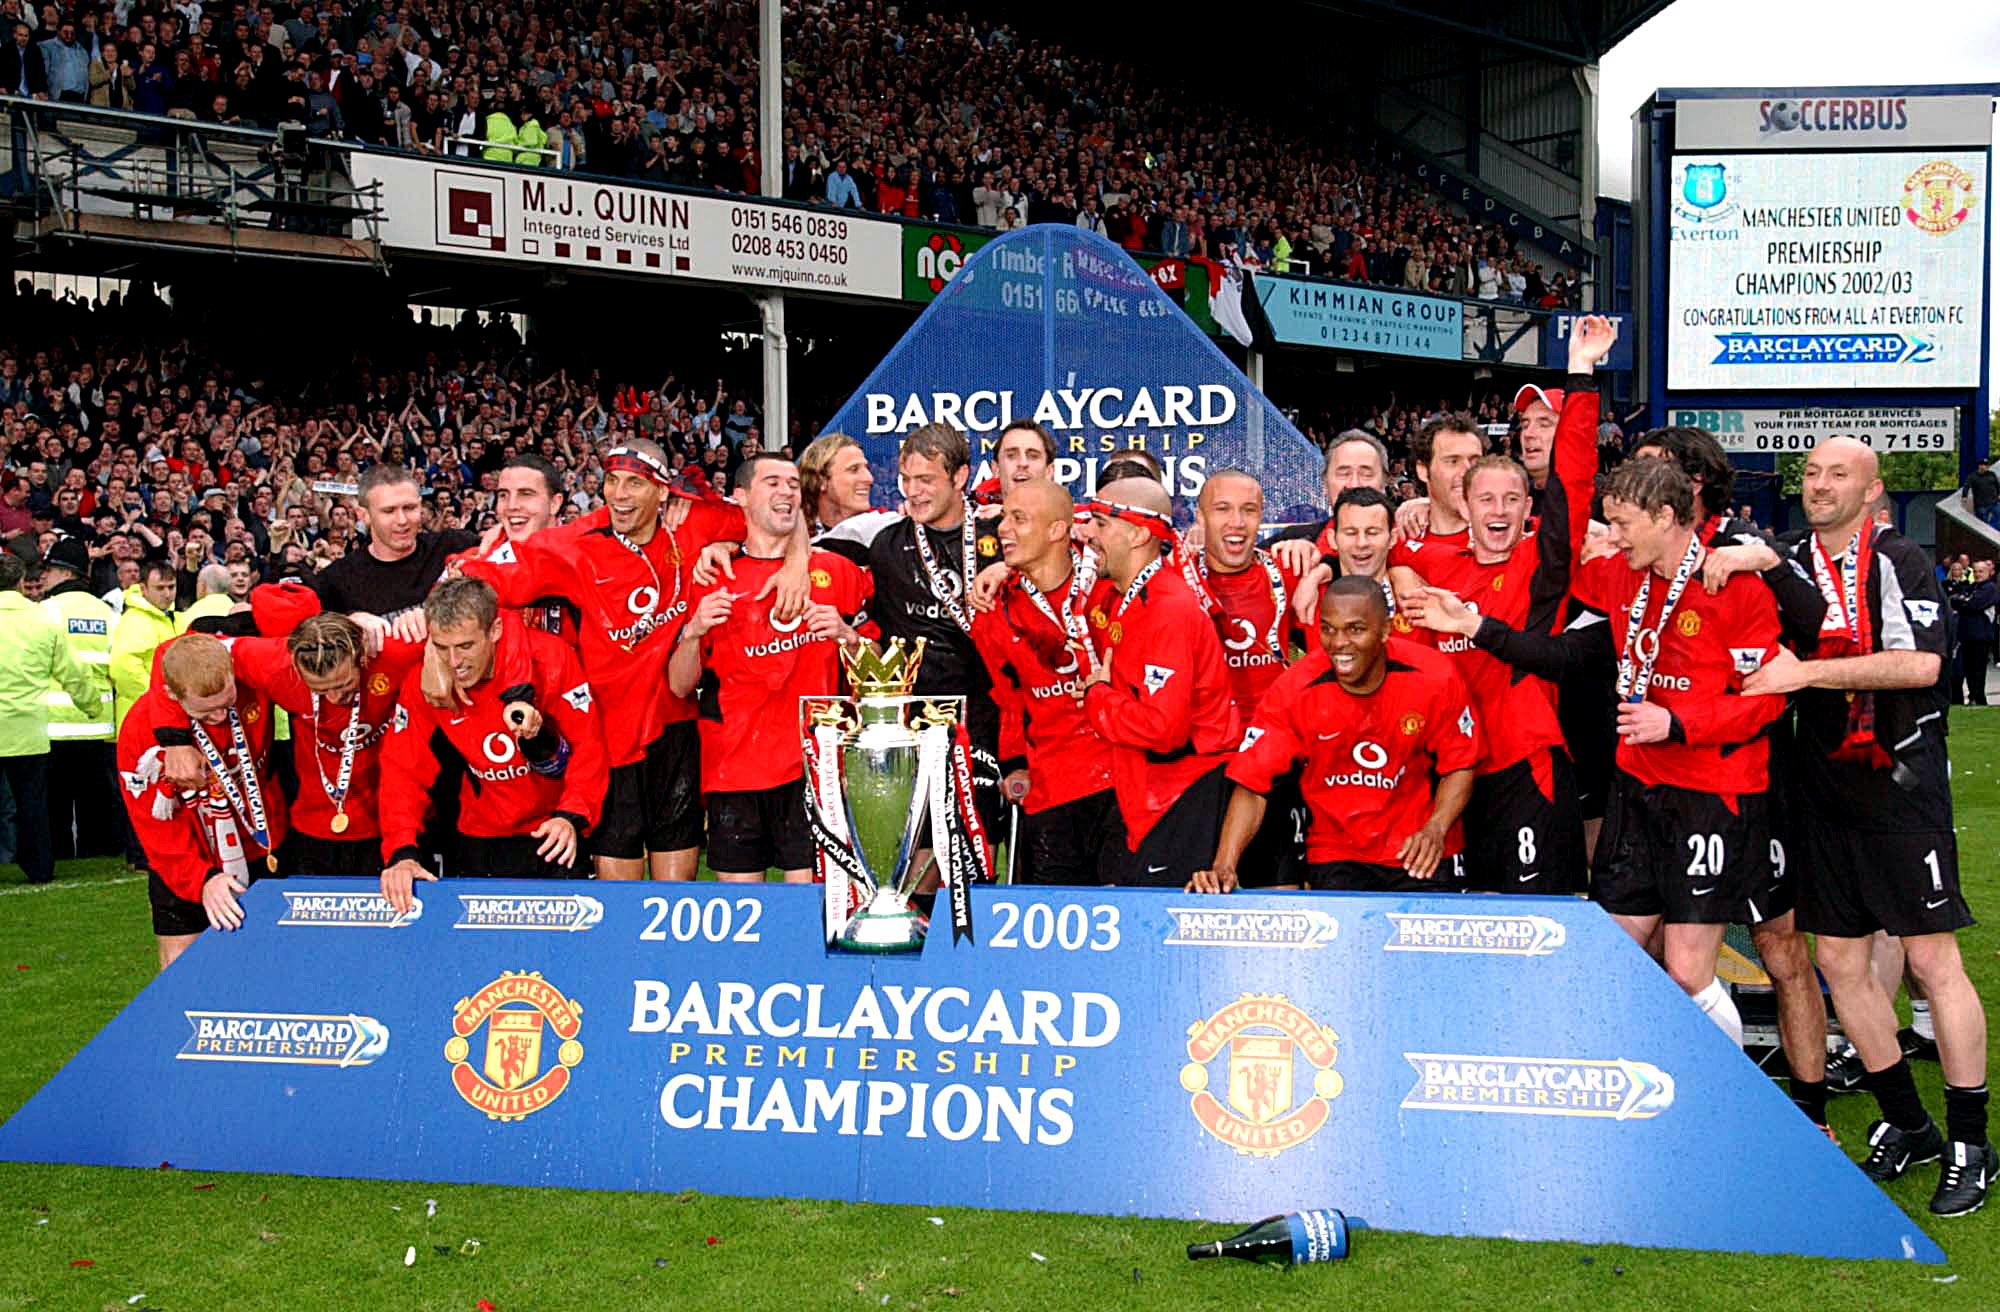 https://platform-static-files.s3.amazonaws.com/premierleague/photo/2016/06/01/0f313c80-9203-456f-88a1-d40f3029a3c4/man-utd-champions-2002-2003.jpg